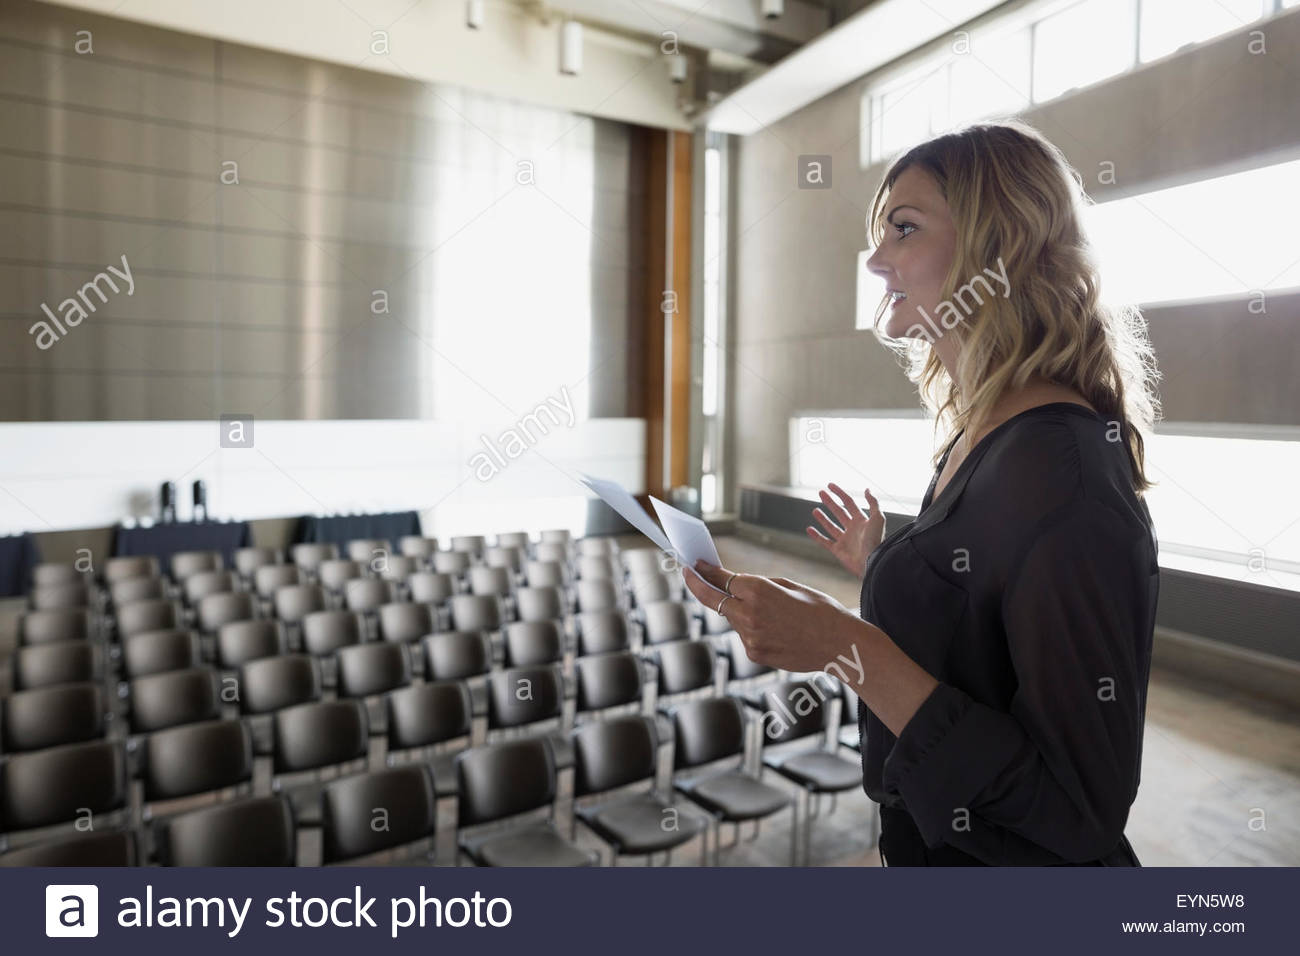 Woman reviewing notes on stage in empty auditorium - Stock Image